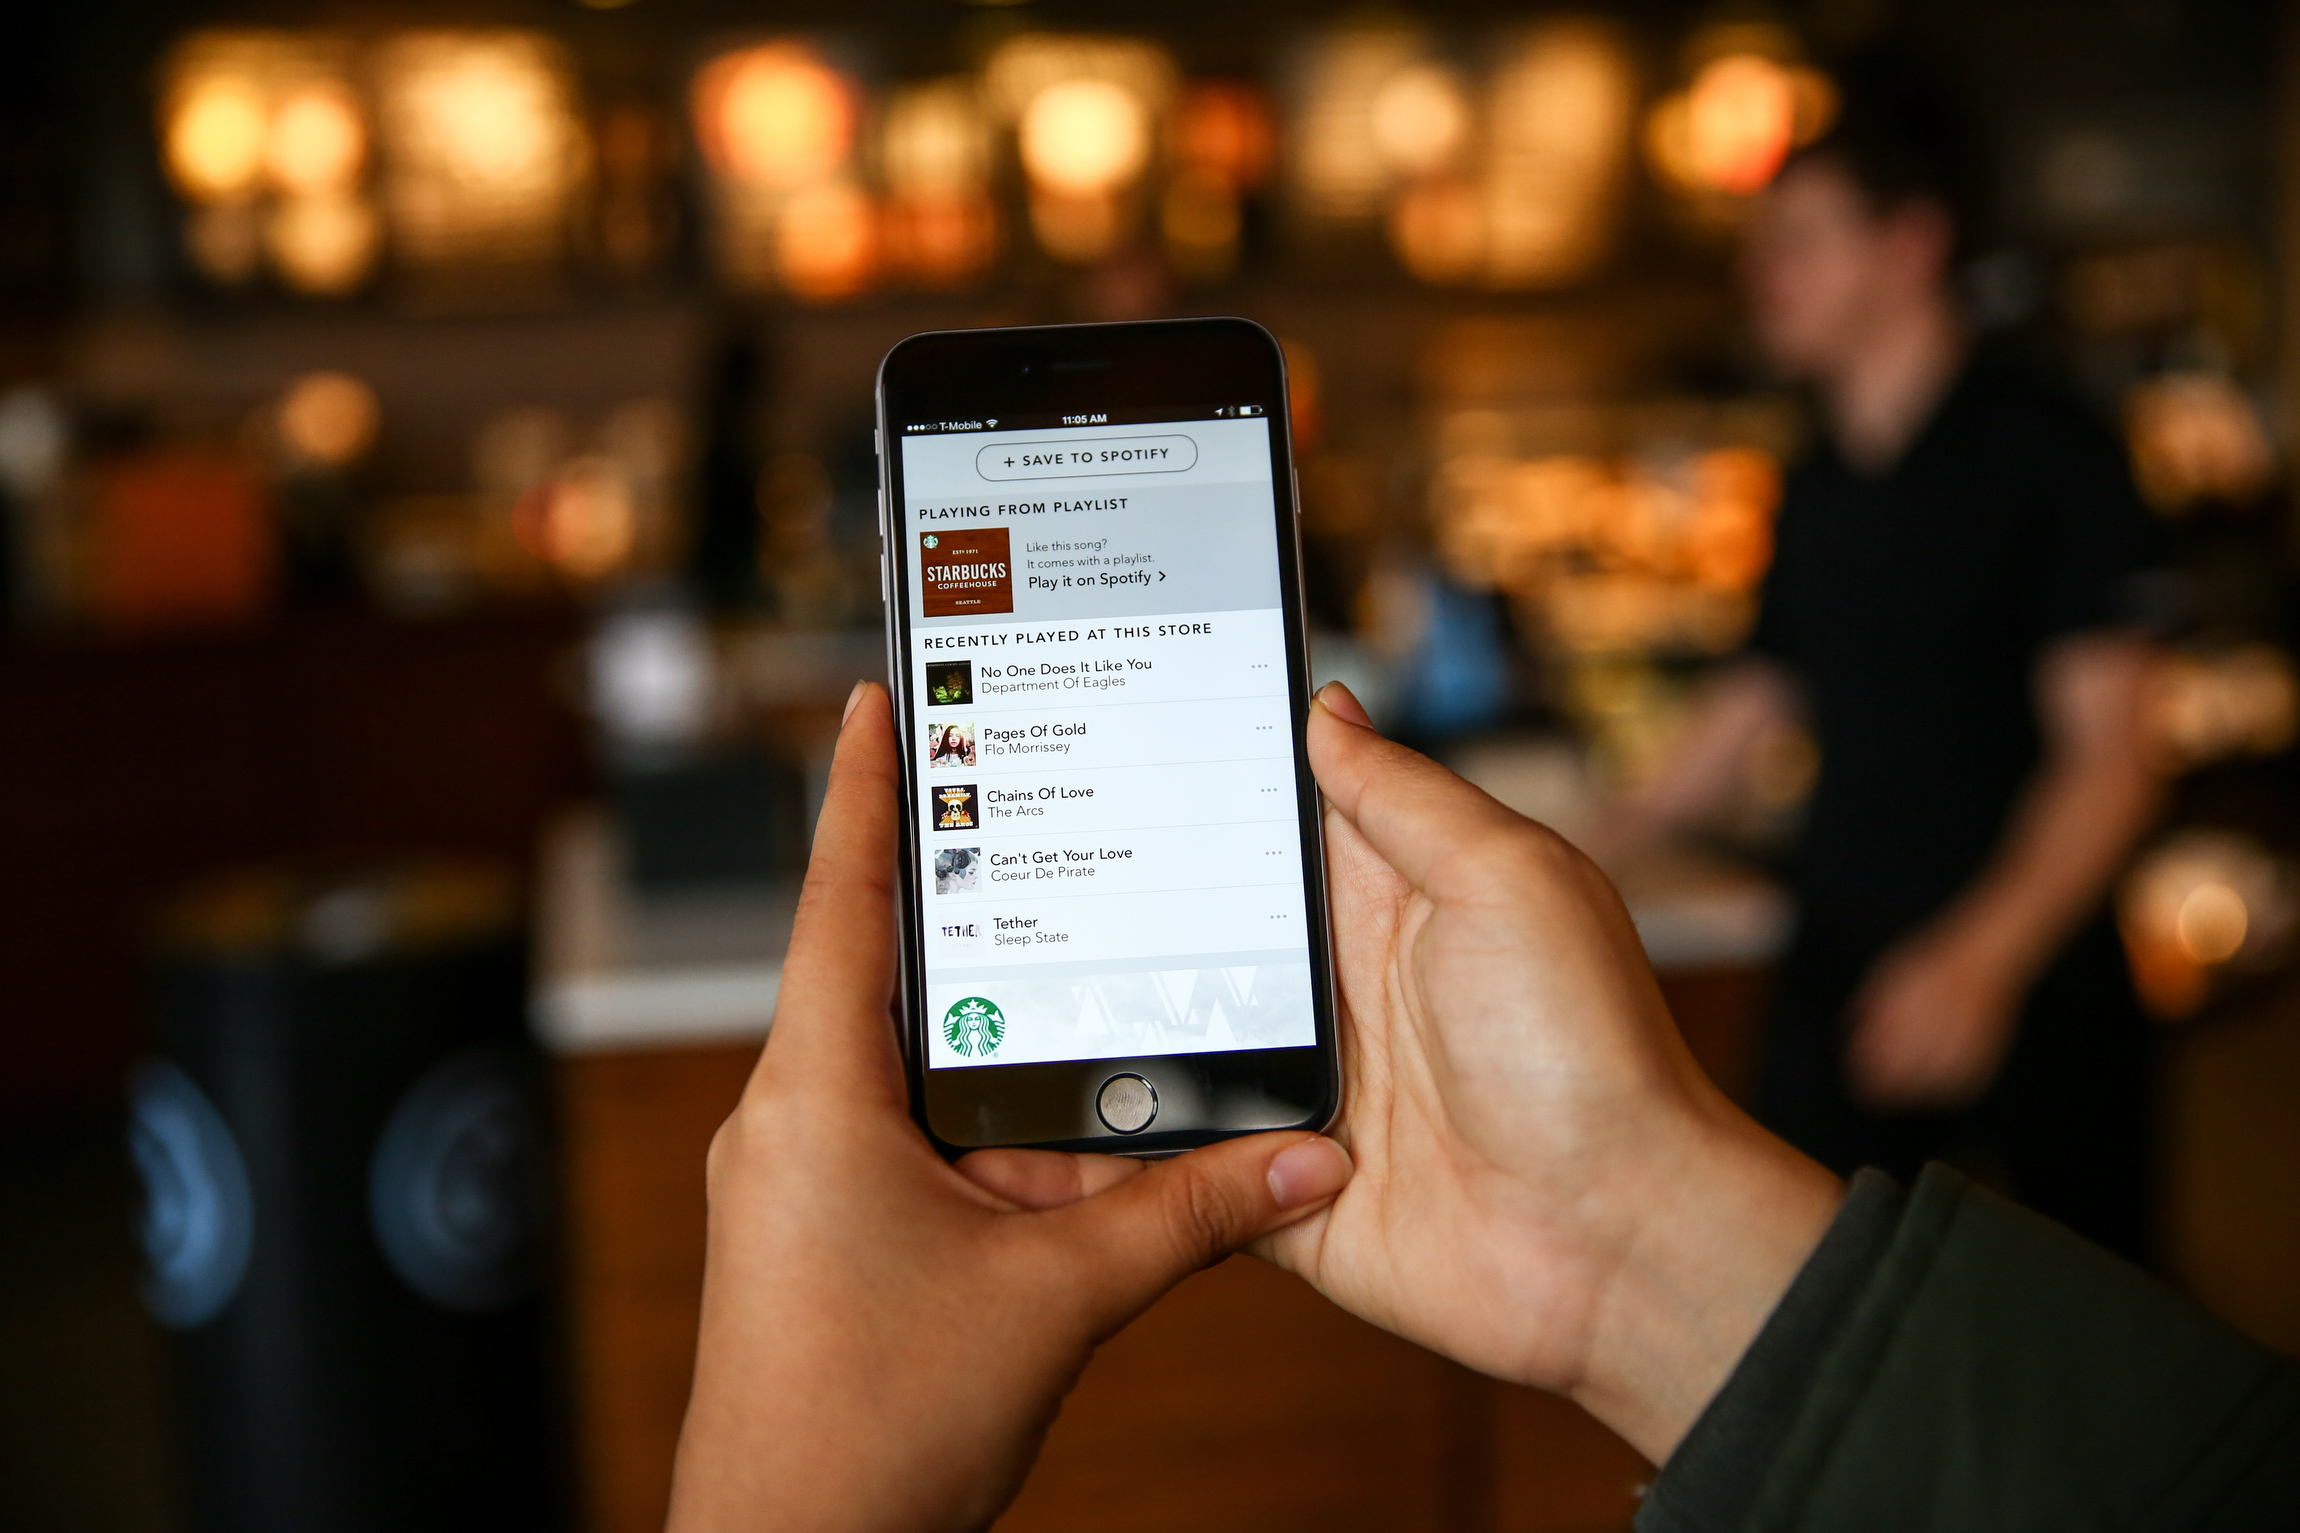 Starbucks Now Lets You Save The Songs You Heard In-Store To Spotify